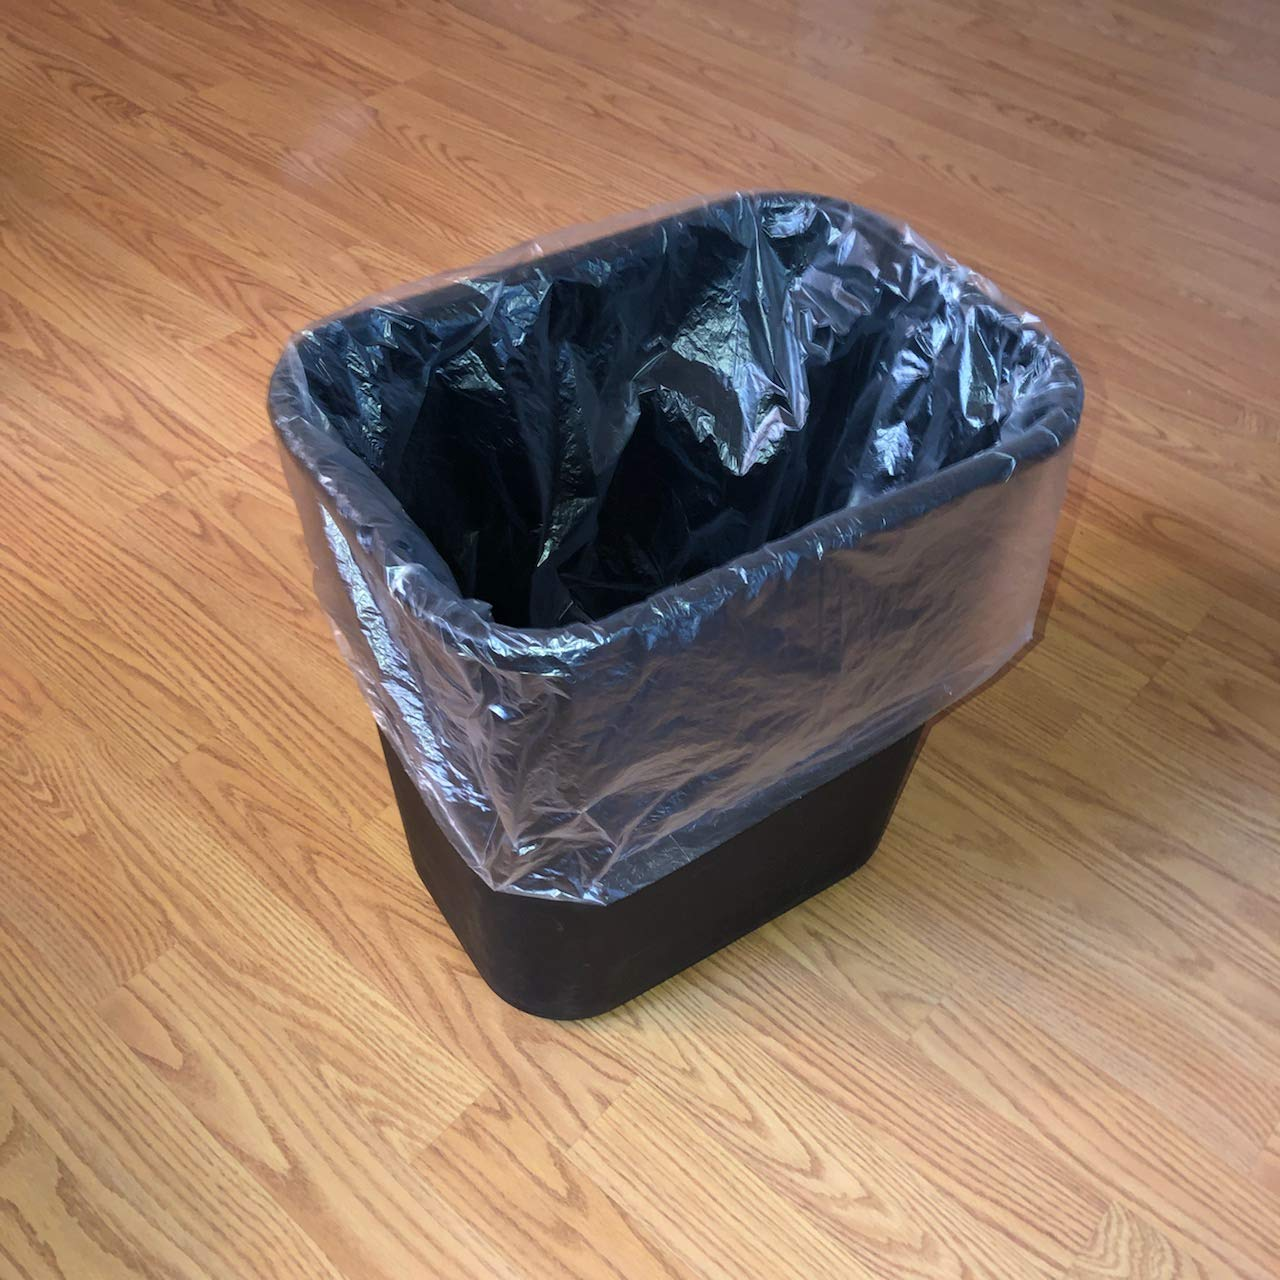 10 Gallon Size Wastebasket Bags 9 Gallon Sizes 250 Small Trash CAN Liners for Small WASTEBASKETS 250 Clear Trash Bags 7 2 Rolls of 125 Bags PER ROLL. Also FITS 6 8